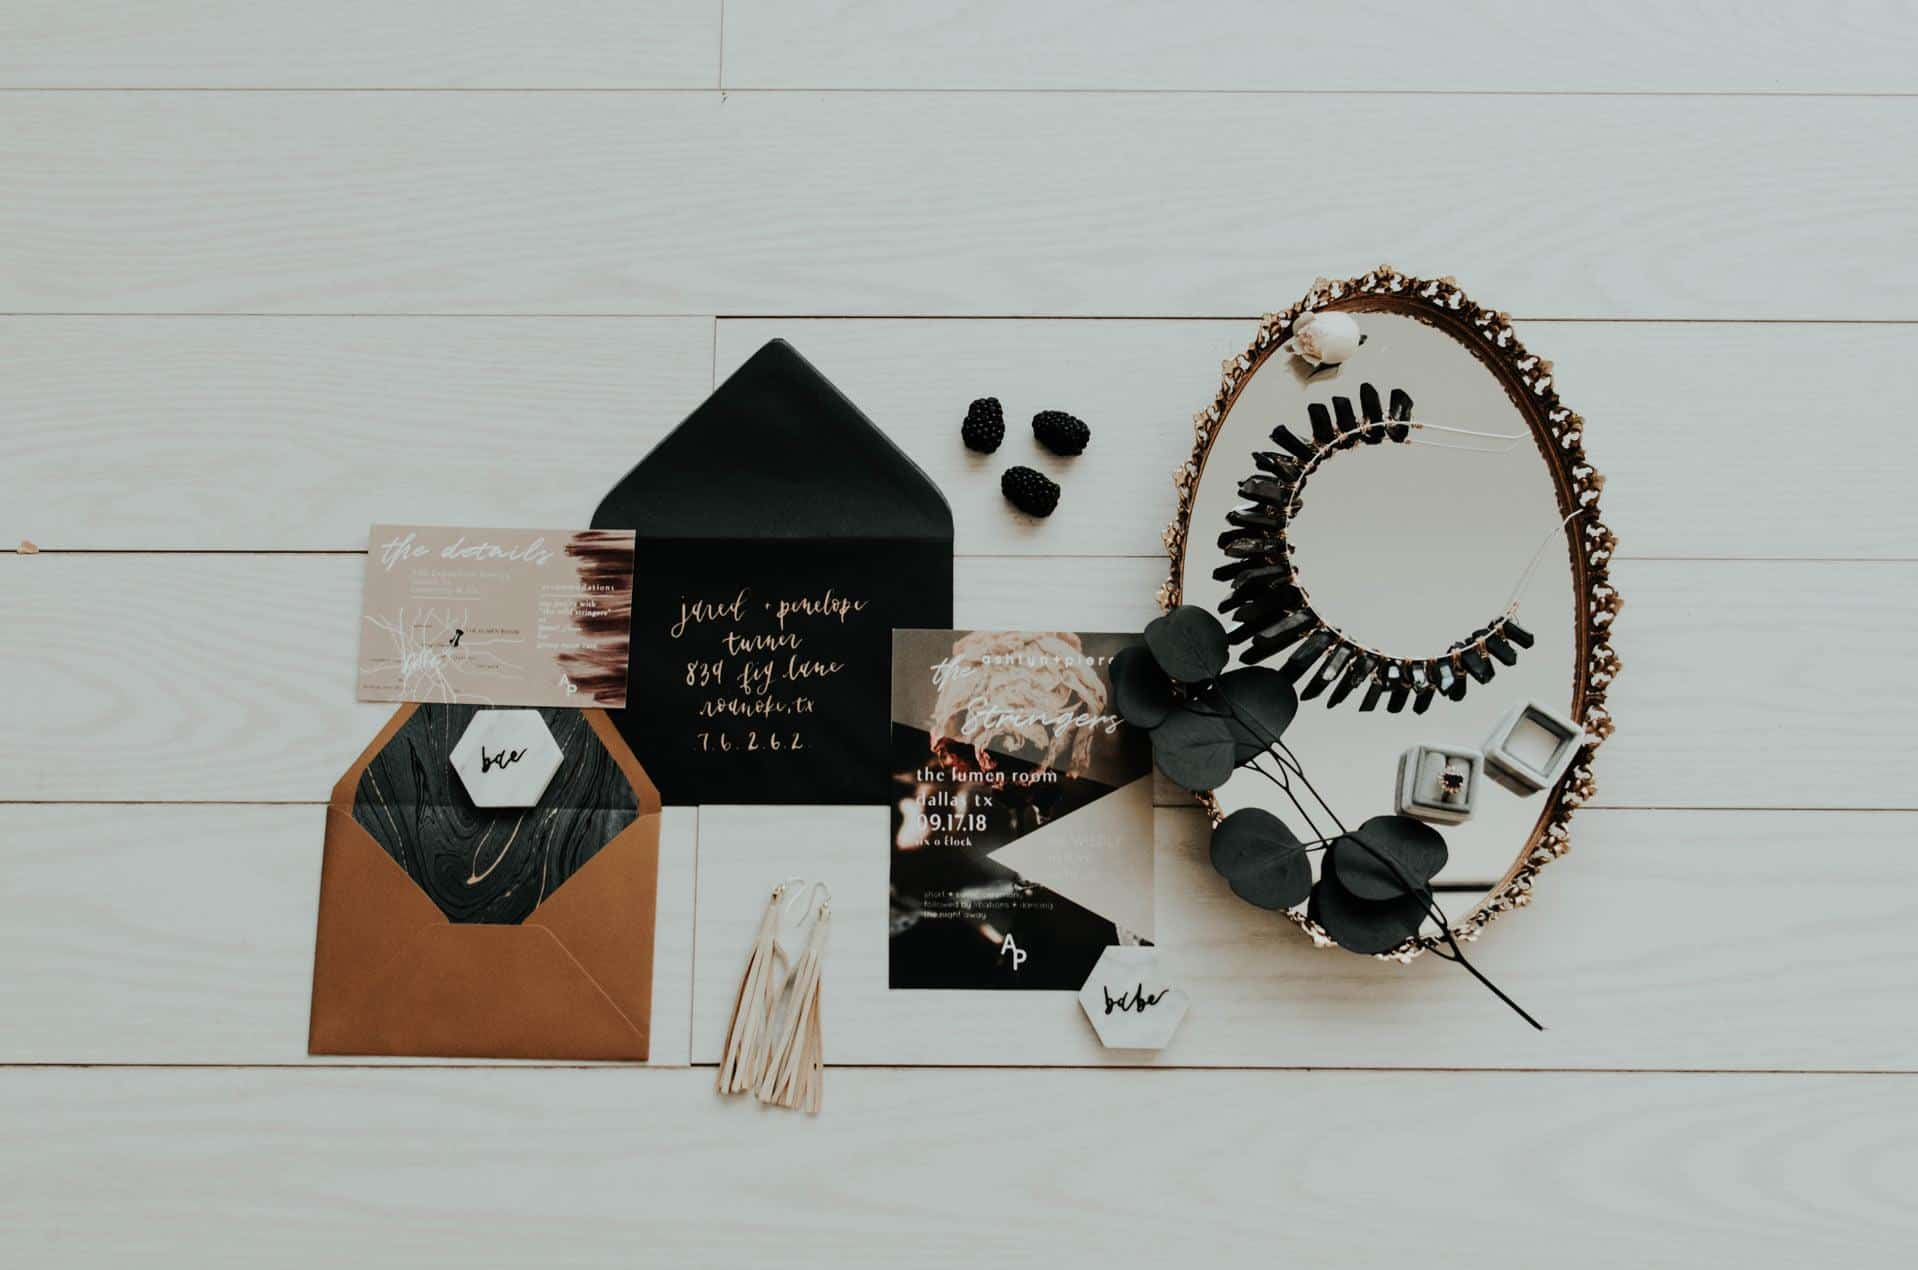 D:\Работа\SEO\GUEST POSTS\POSTS 2019\15.07.2019\Ryan Top 10 Trendy Wedding Invitations 2019\modern-wedding-invitations-stylish-invitation-with-envelope-photo-by-morgan-mcdonald-on-unsplash.jpg